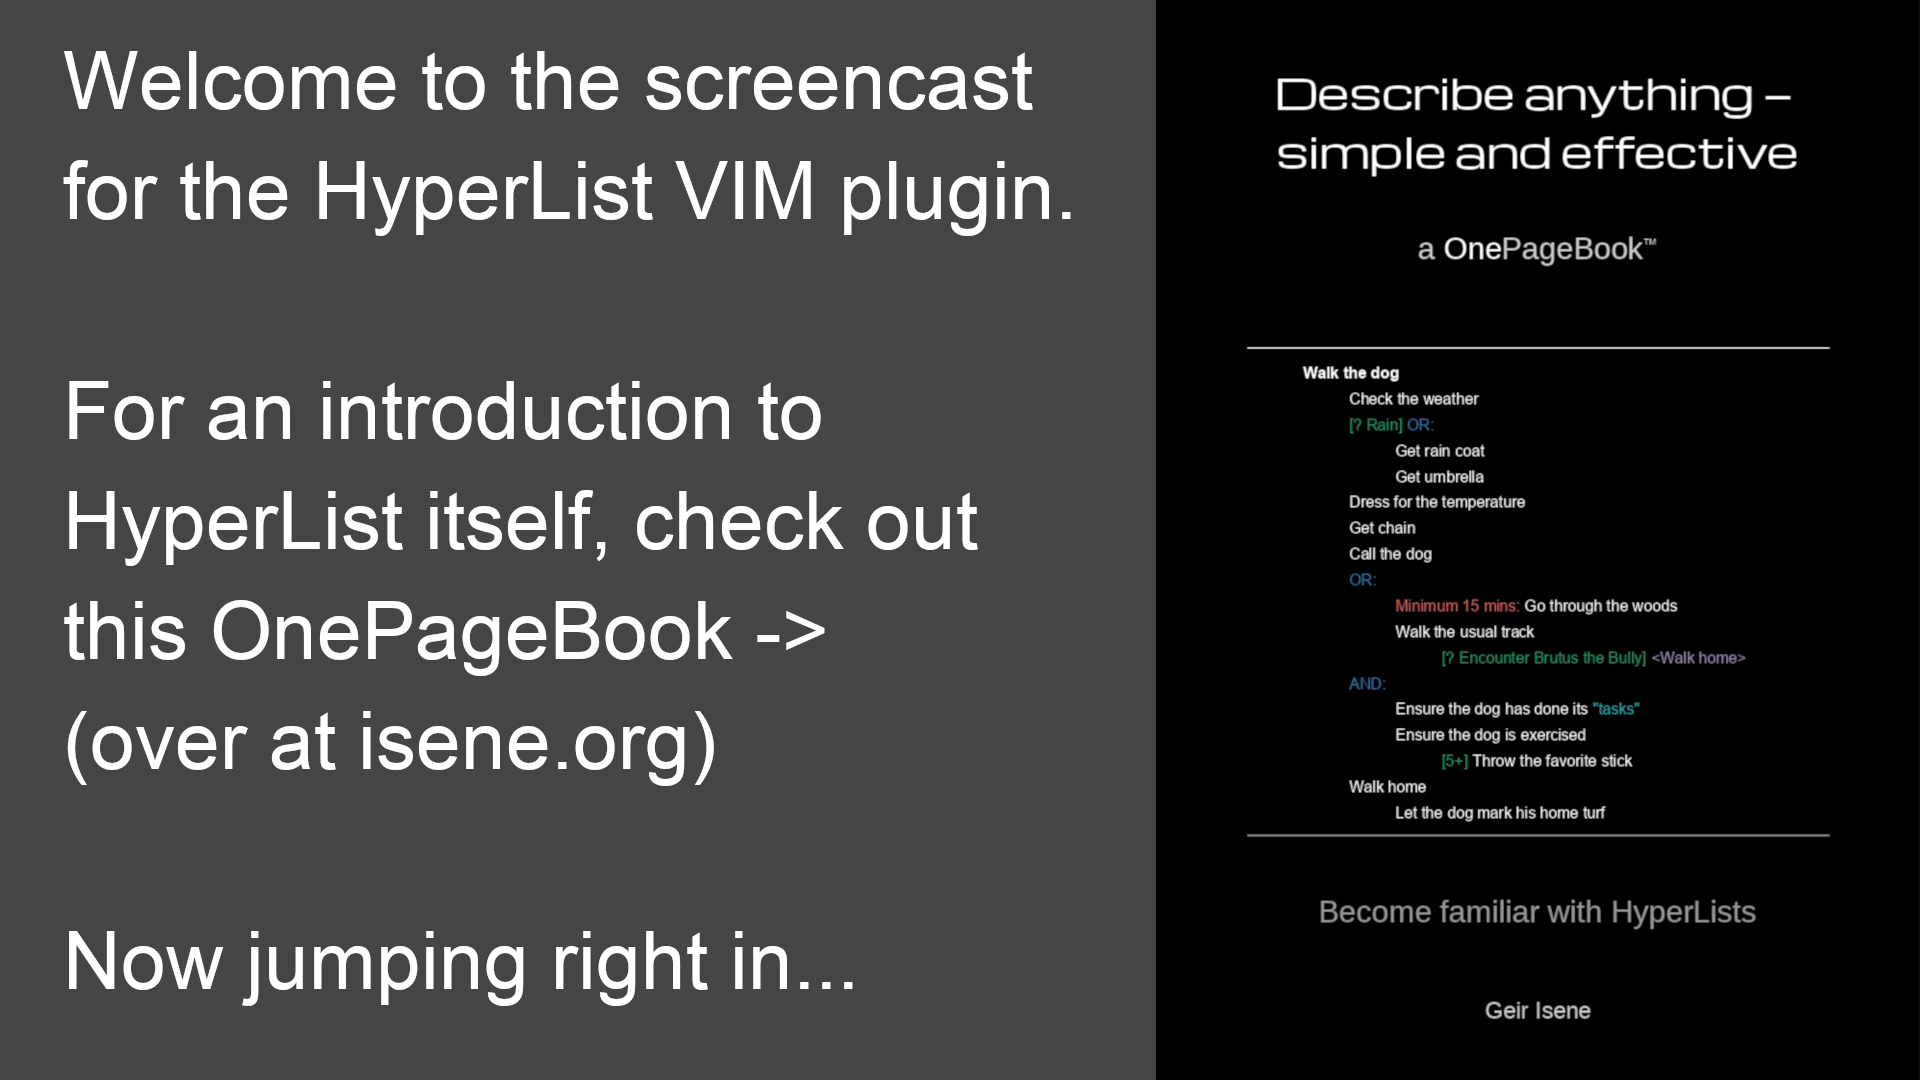 HyperList screencast